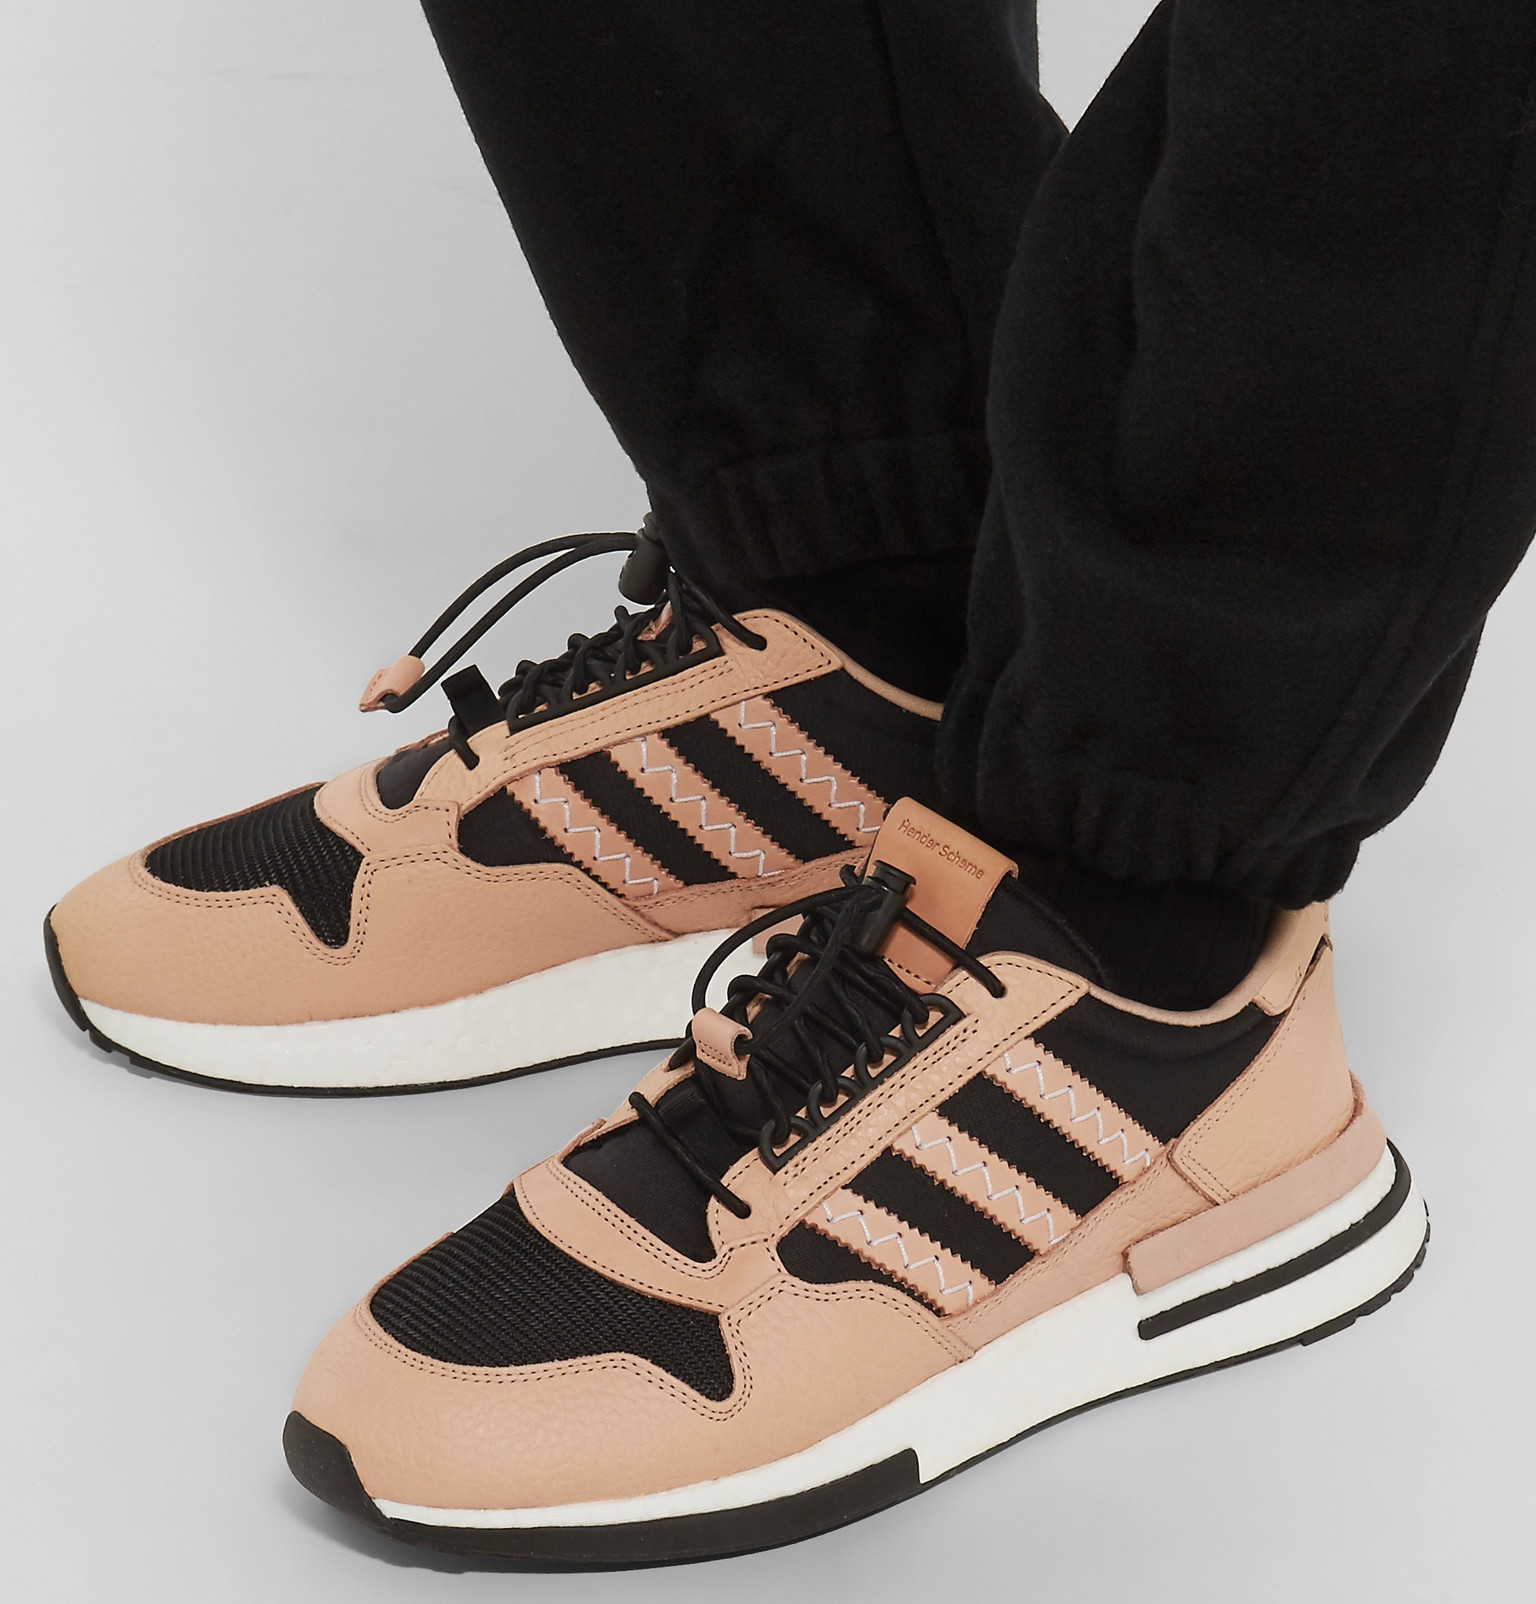 huge selection of 080e5 a0a81 adidas Consortium - + Hender Scheme ZX 500 RM MT Leather and Mesh Sneakers